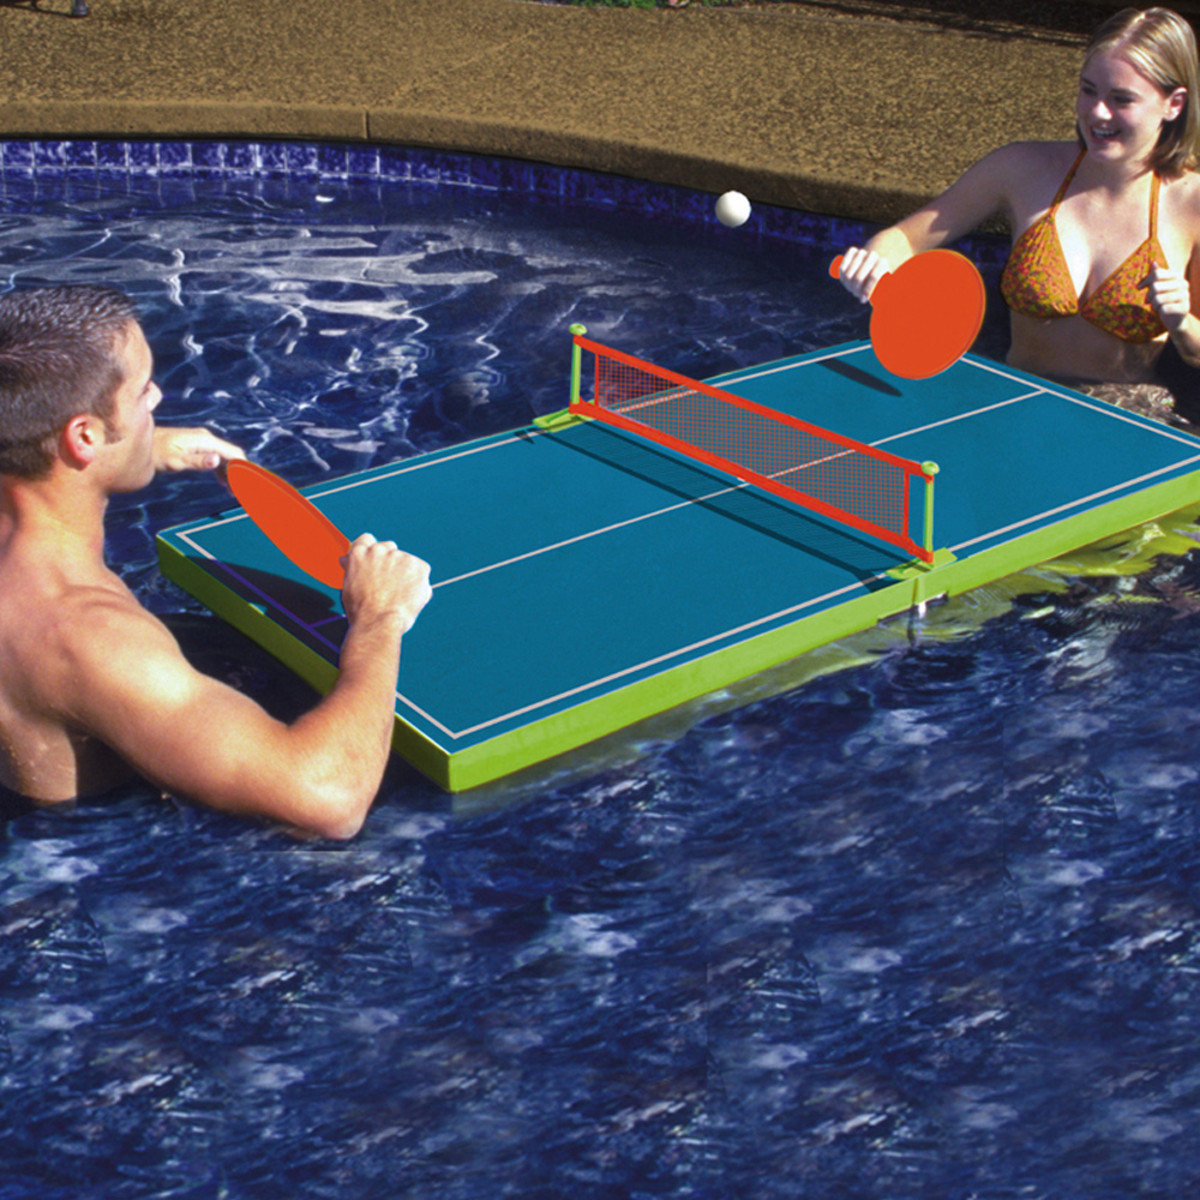 Poolmaster Floating Table Tennis Game Pool Sports Games Splash Super Center